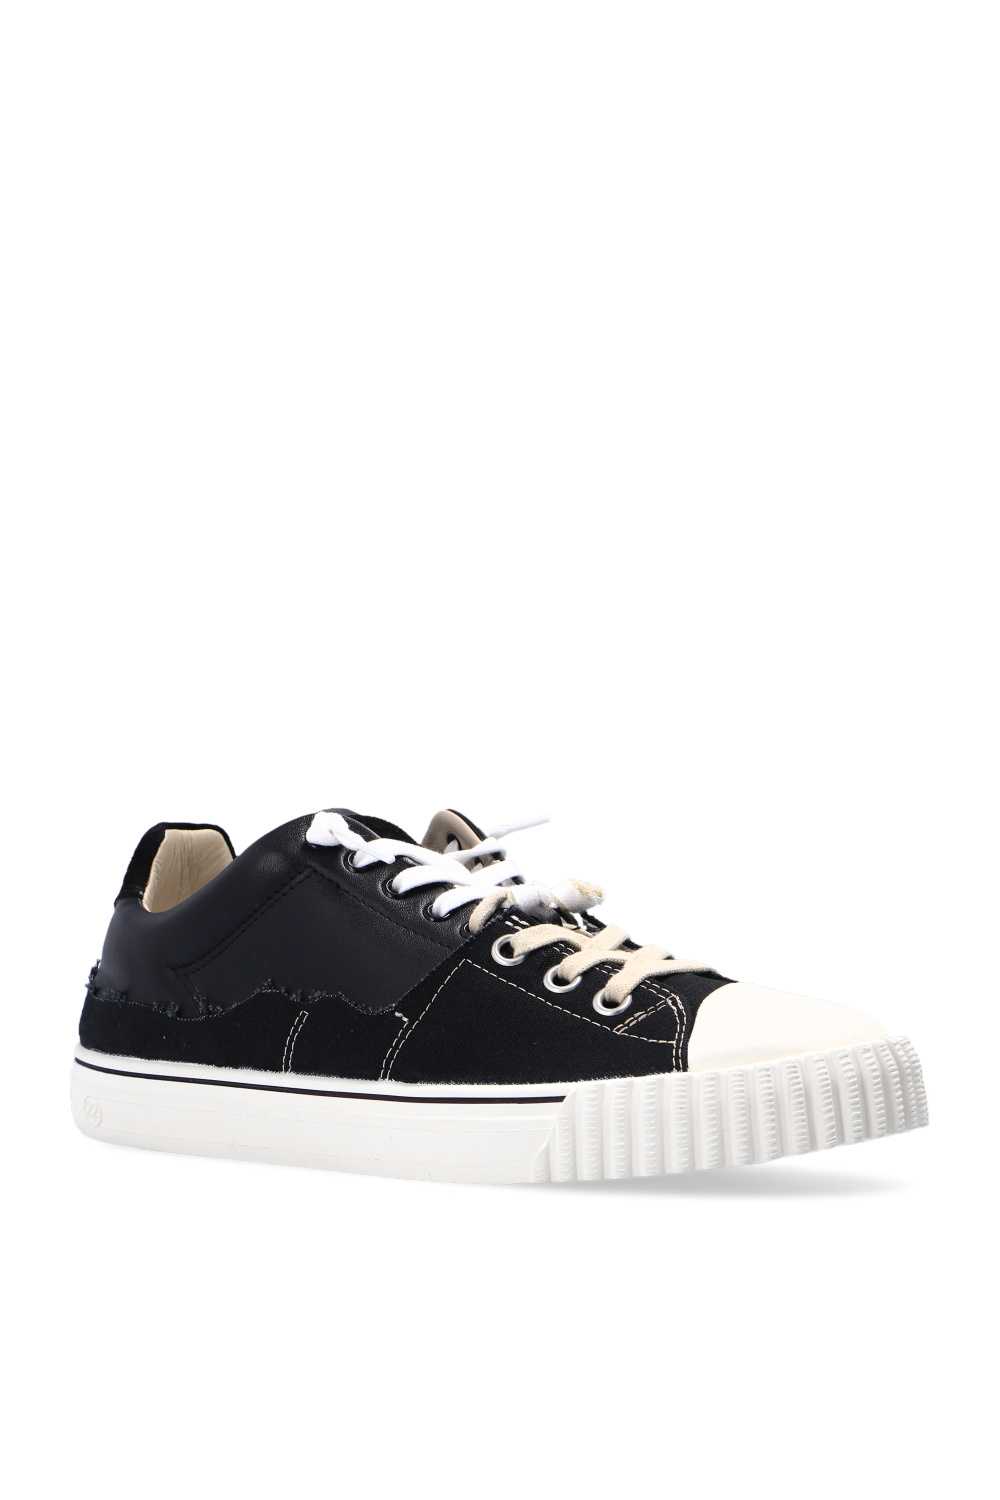 Maison Margiela Sneakers with logo